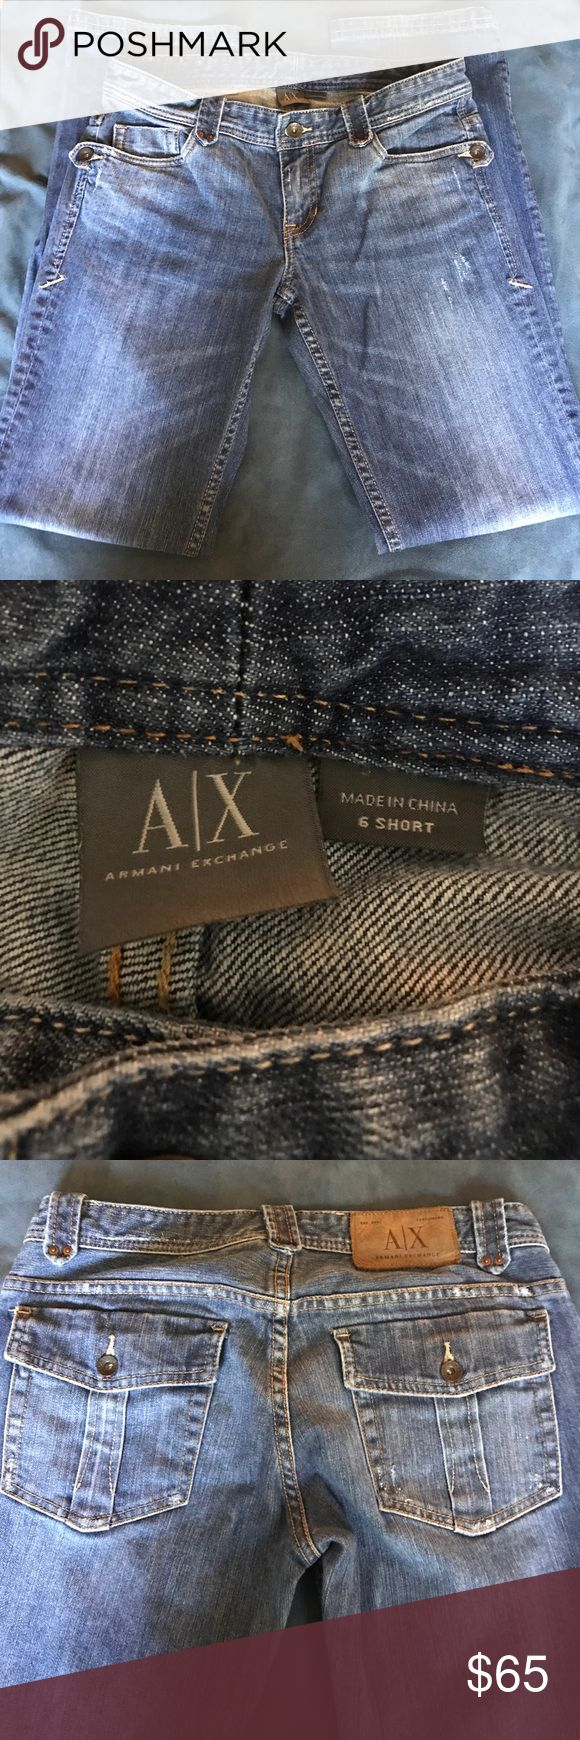 Armani Exchange Jeans Boot cut size 6 short A/X Armani Exchange Jeans Boot Cut